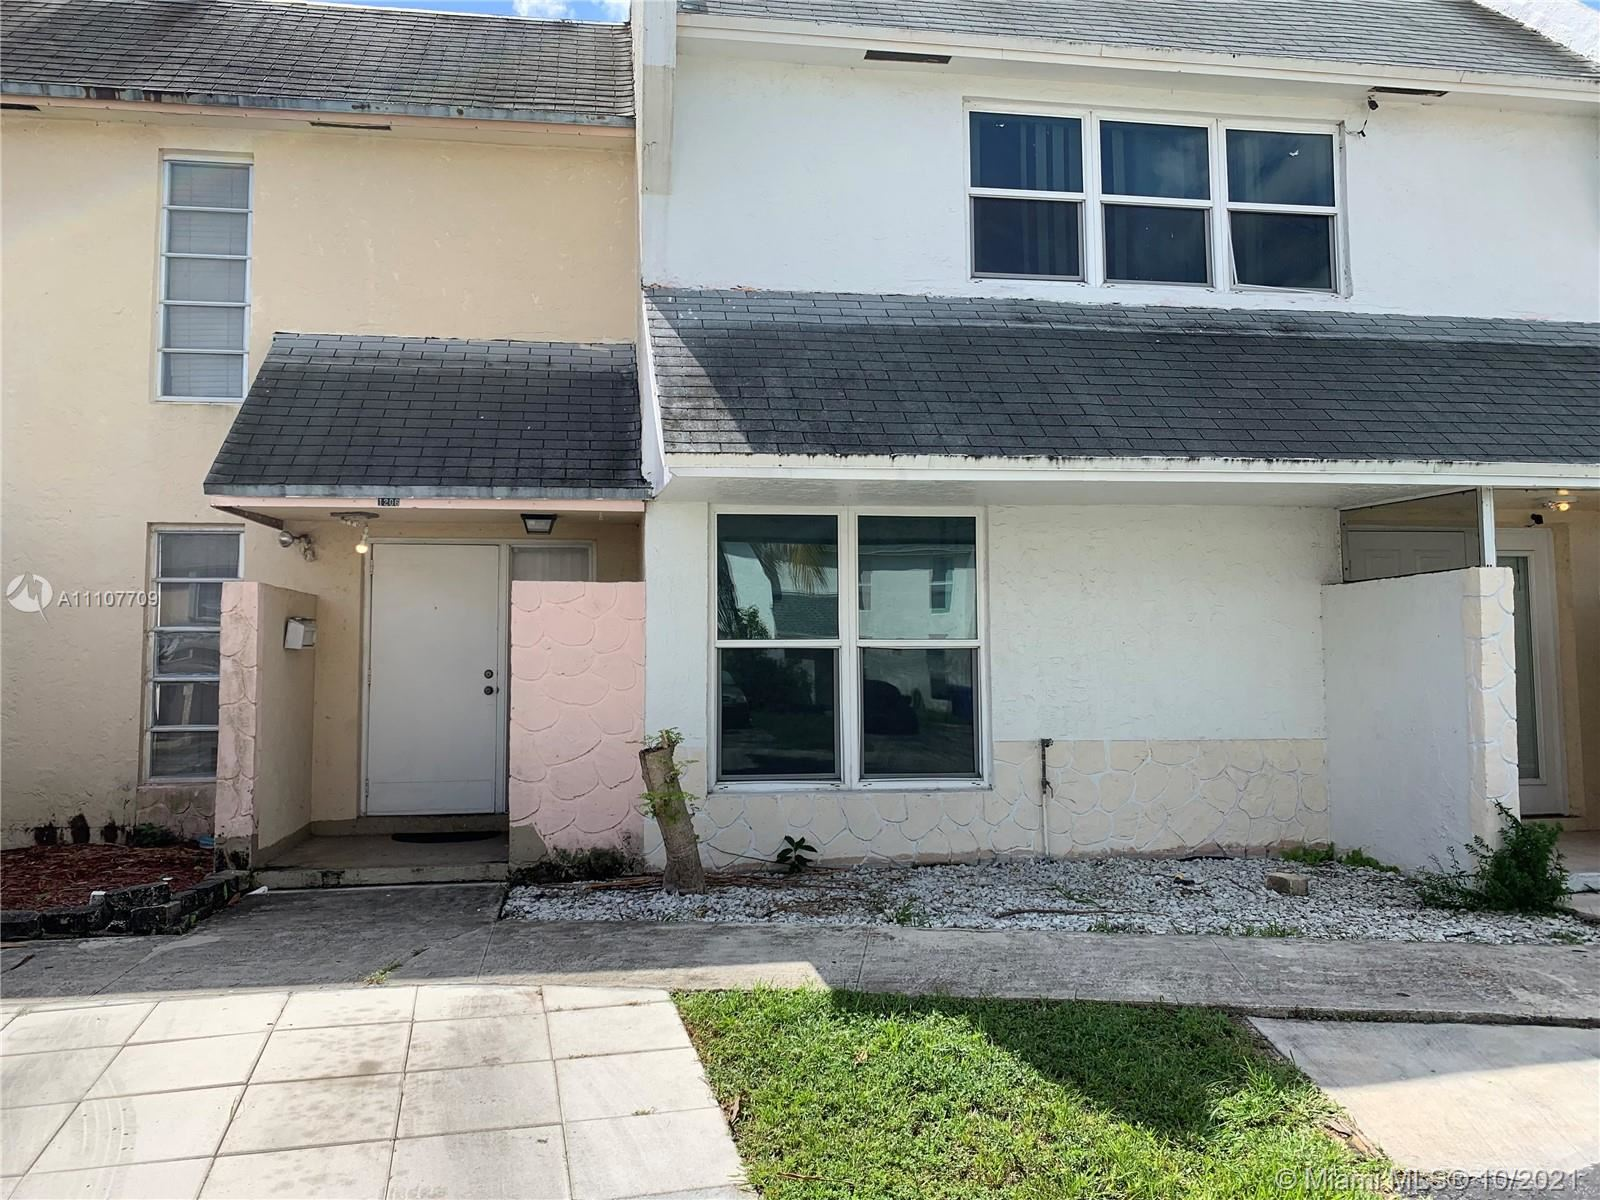 Photo of 1206 Seaview, North Lauderdale, FL 33068 (MLS # A11107709)